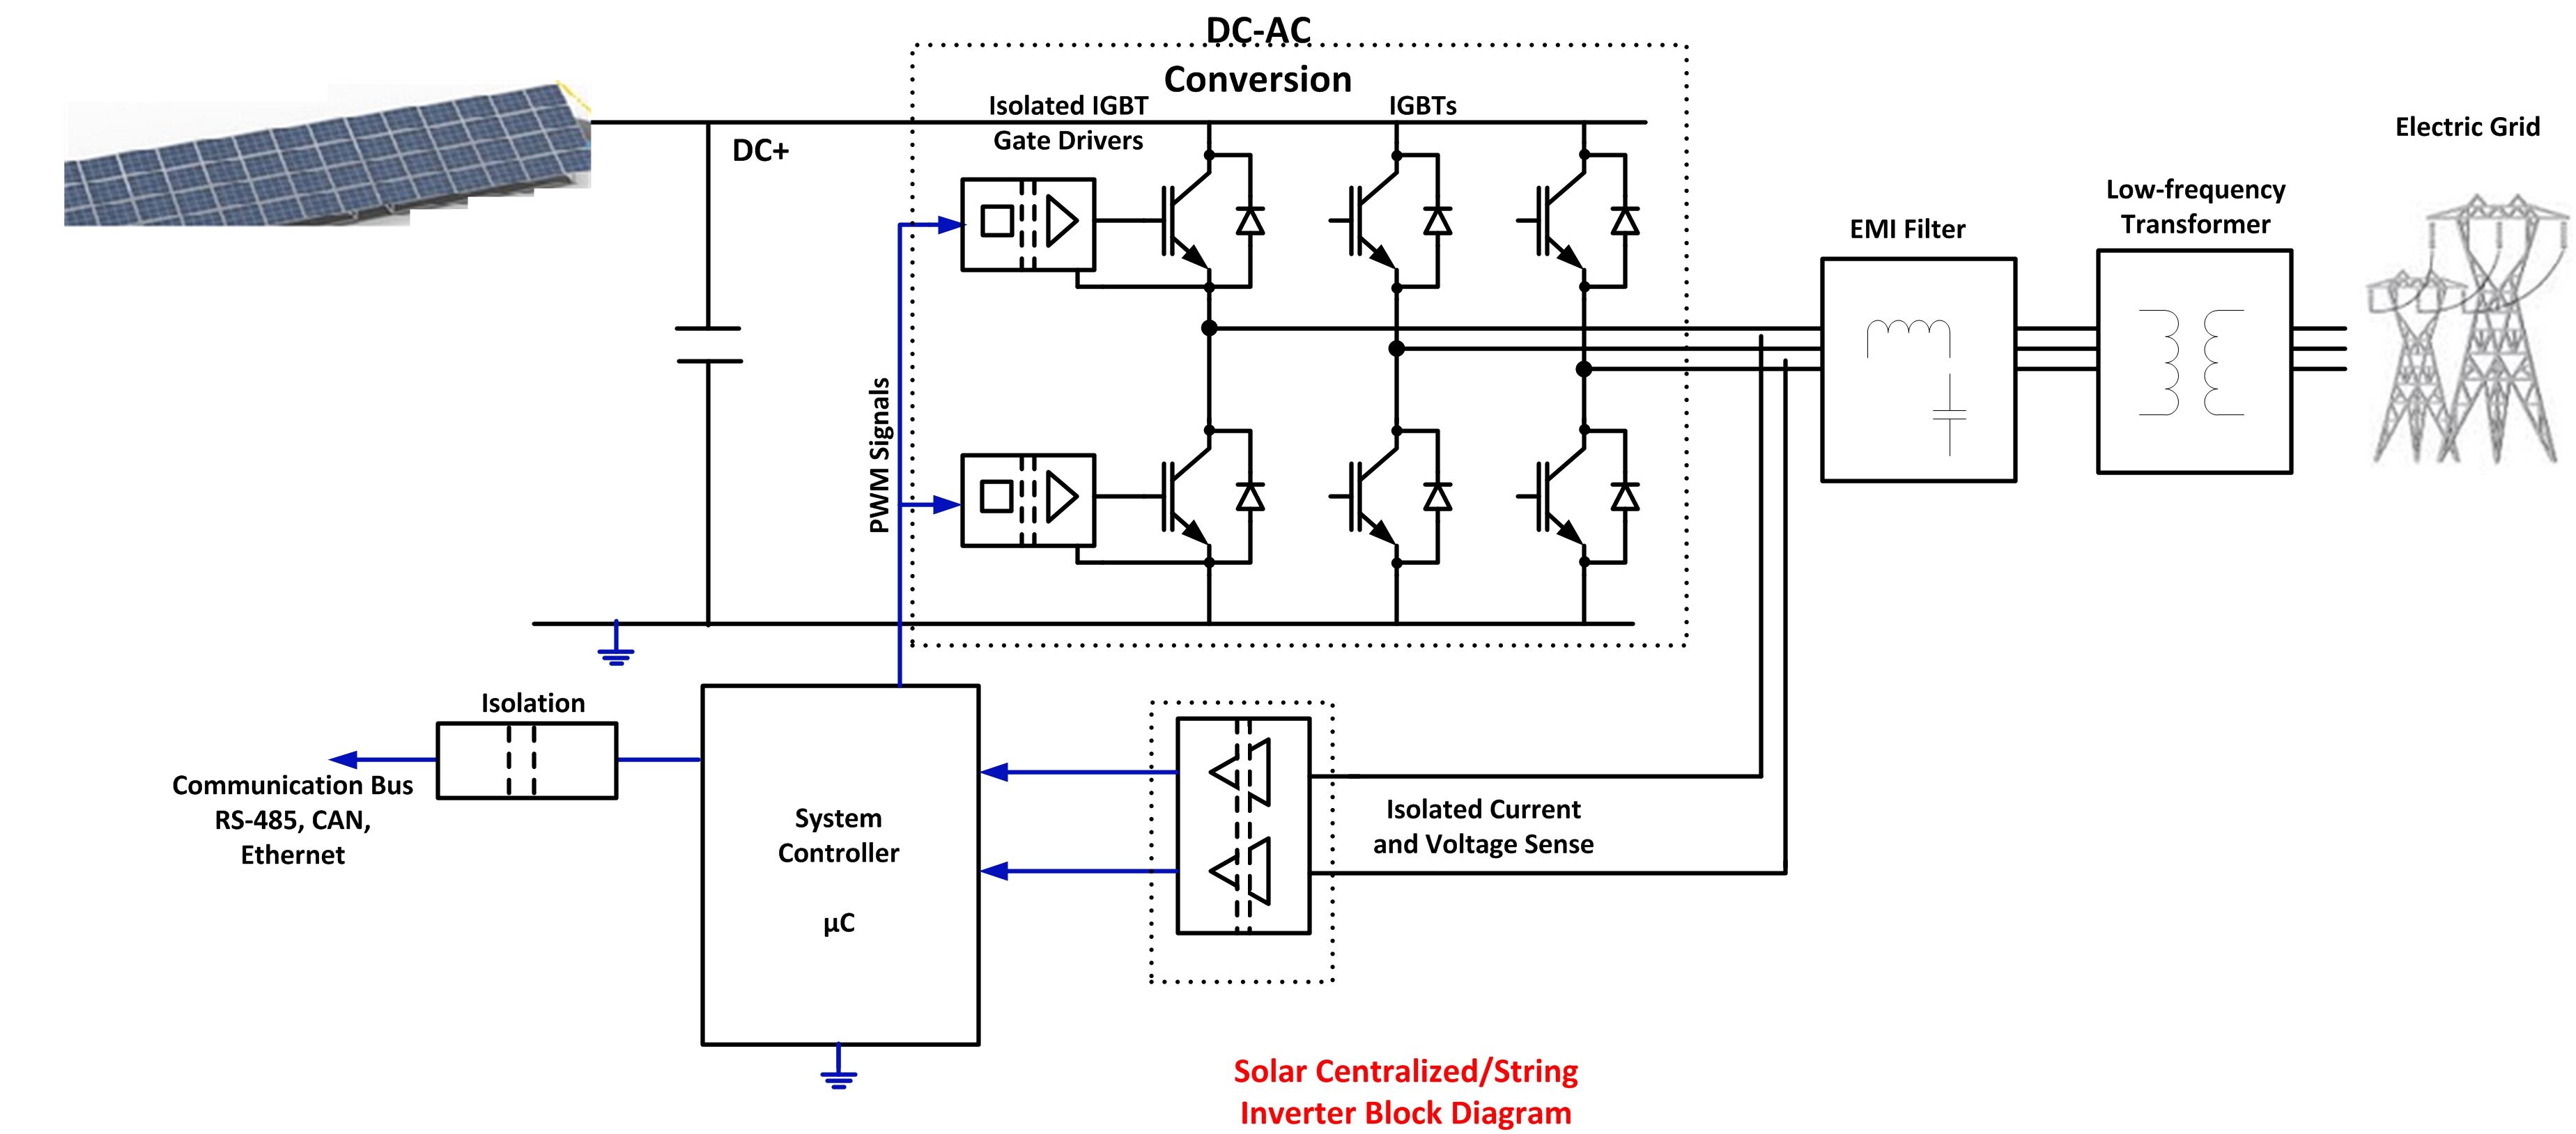 Solar Inverter Block Diagram Fig 1 Schematic Of Panel Charge Controller Using Arduino And A Images